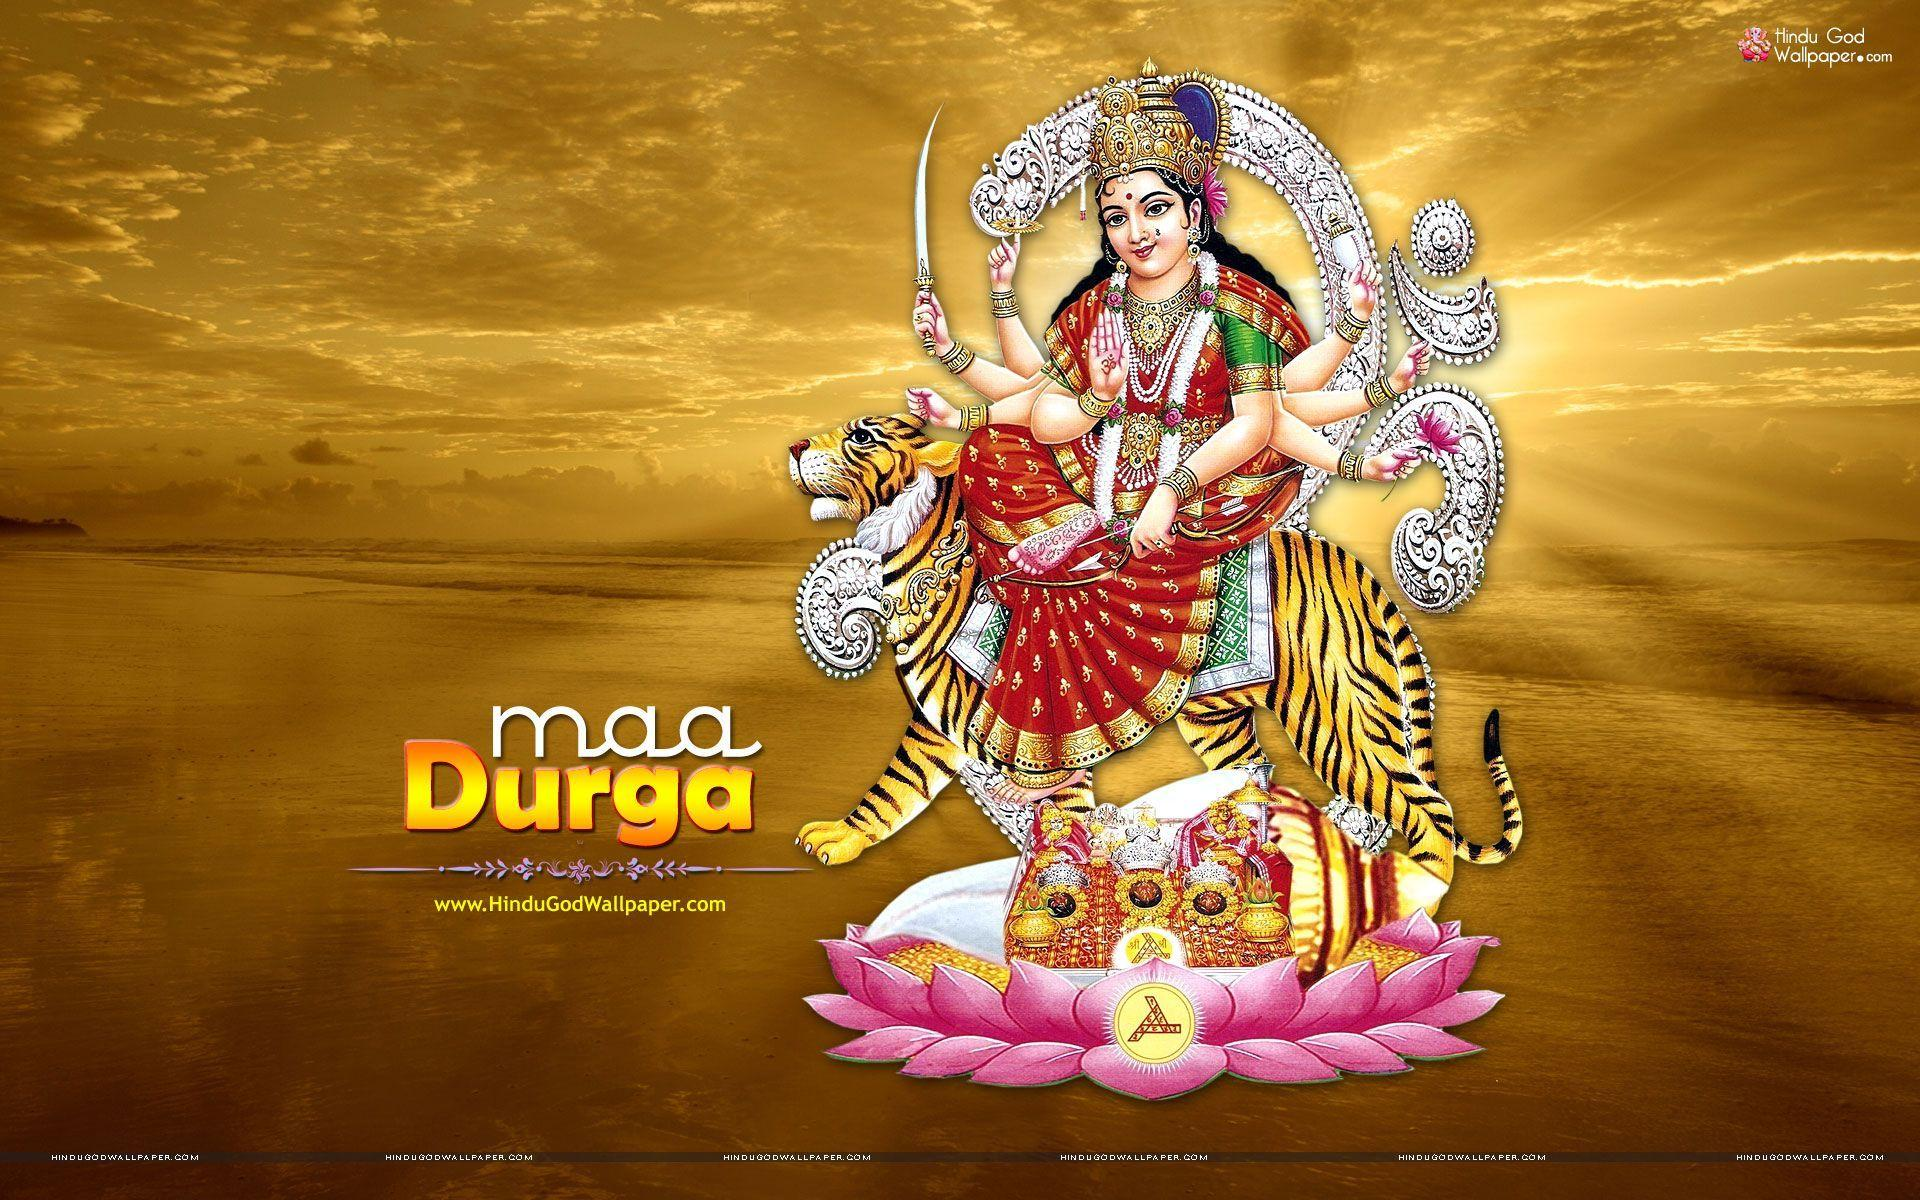 3d God Wallpapers Of Hindu Durga Maa Wallpaper Cave